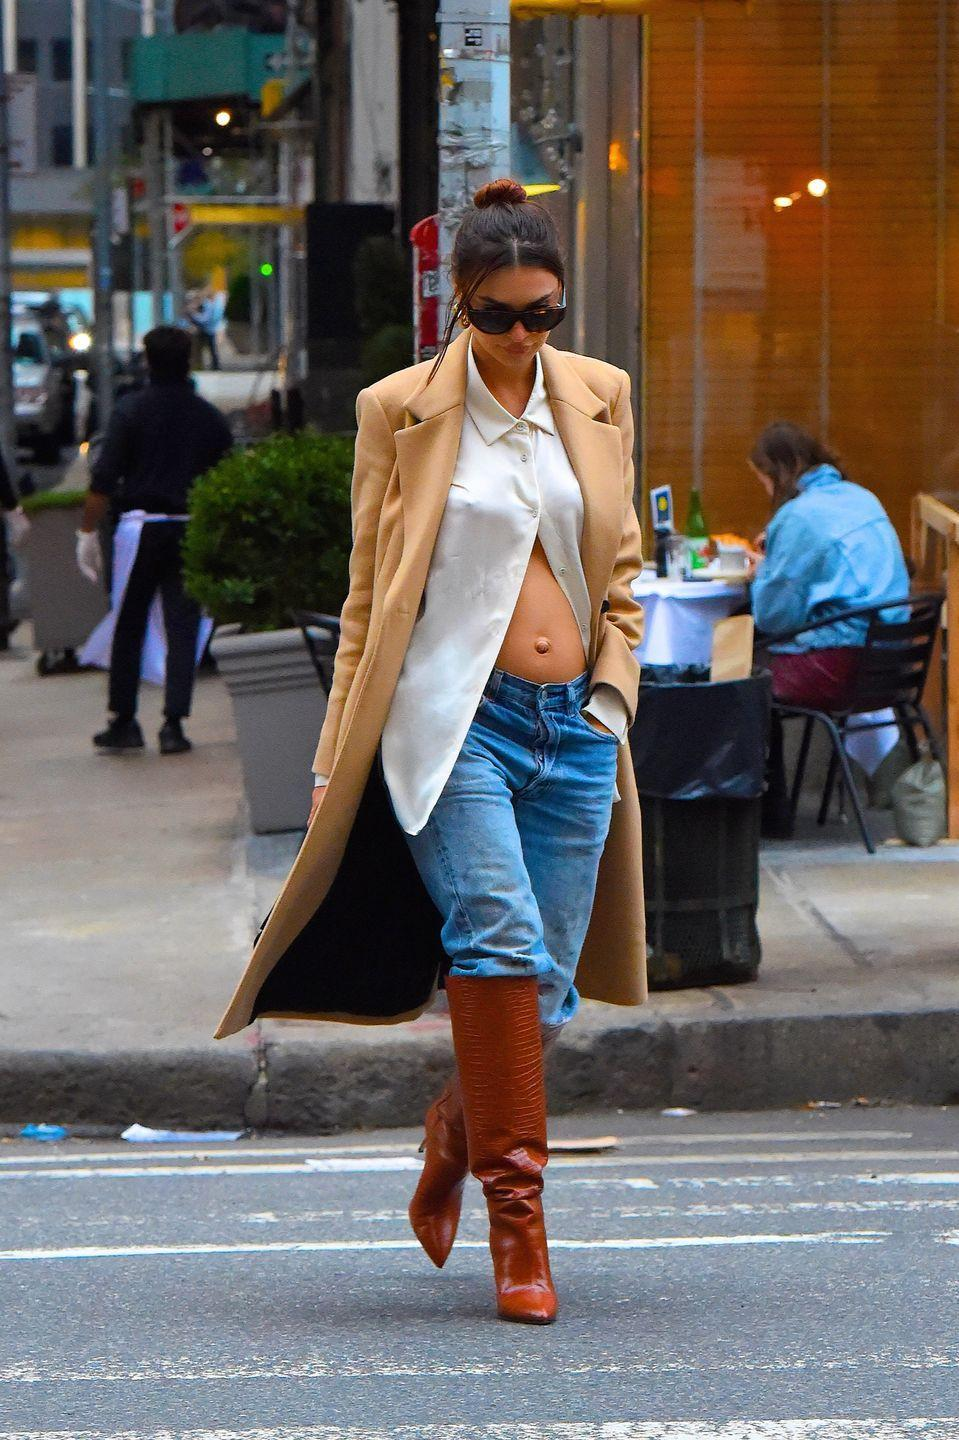 <p>The model was spotted out in New York City in October, wearing a white shirt styled open to reveal her growing bump. She teamed it with jeans, a camel coat and some knee-high boots.</p>